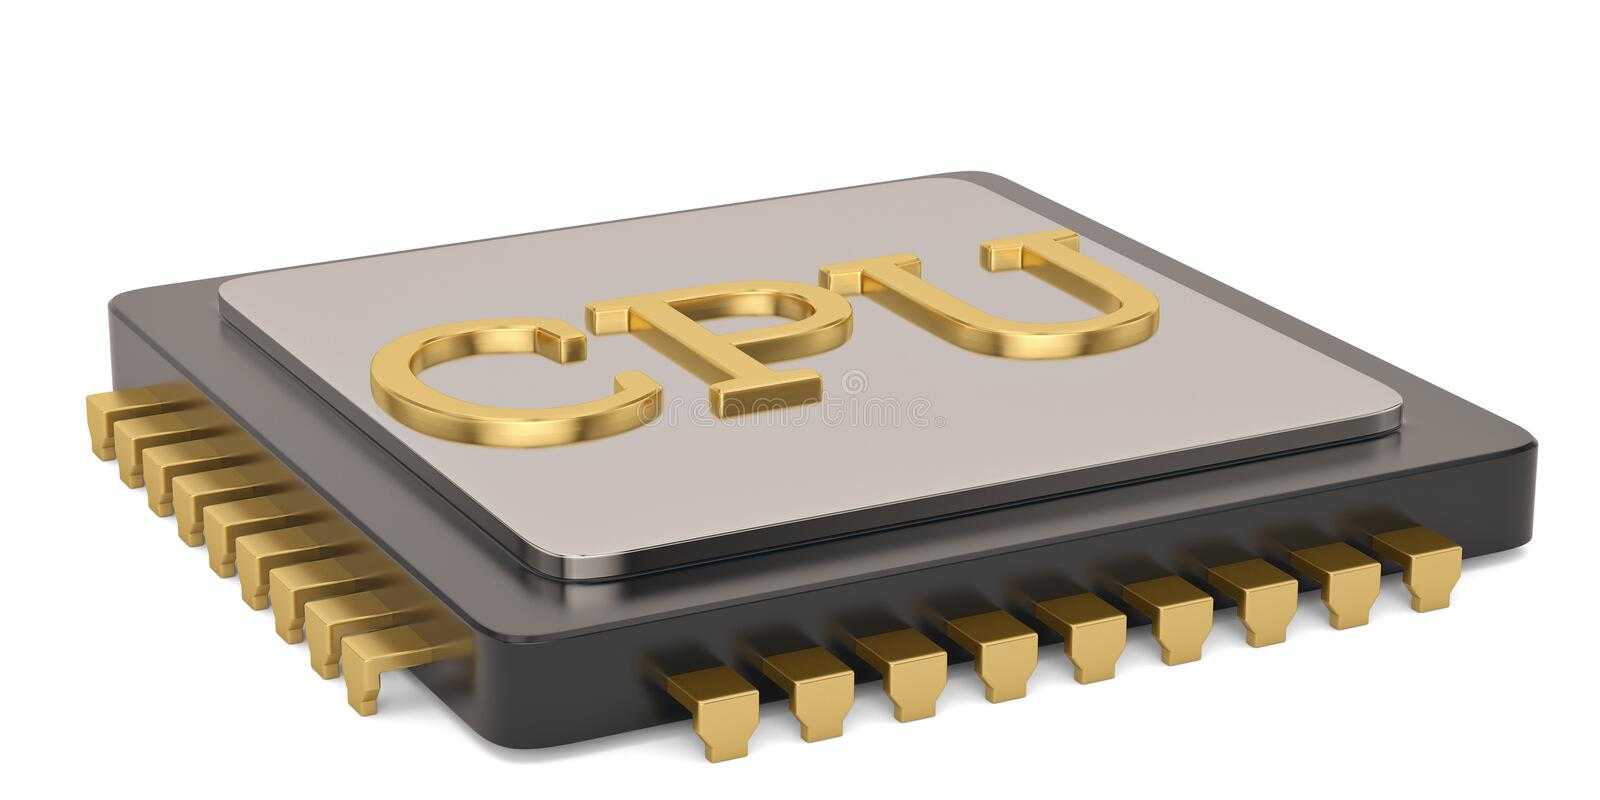 Central computer processors cpu isolated on white background 3D illustration royalty free illustration